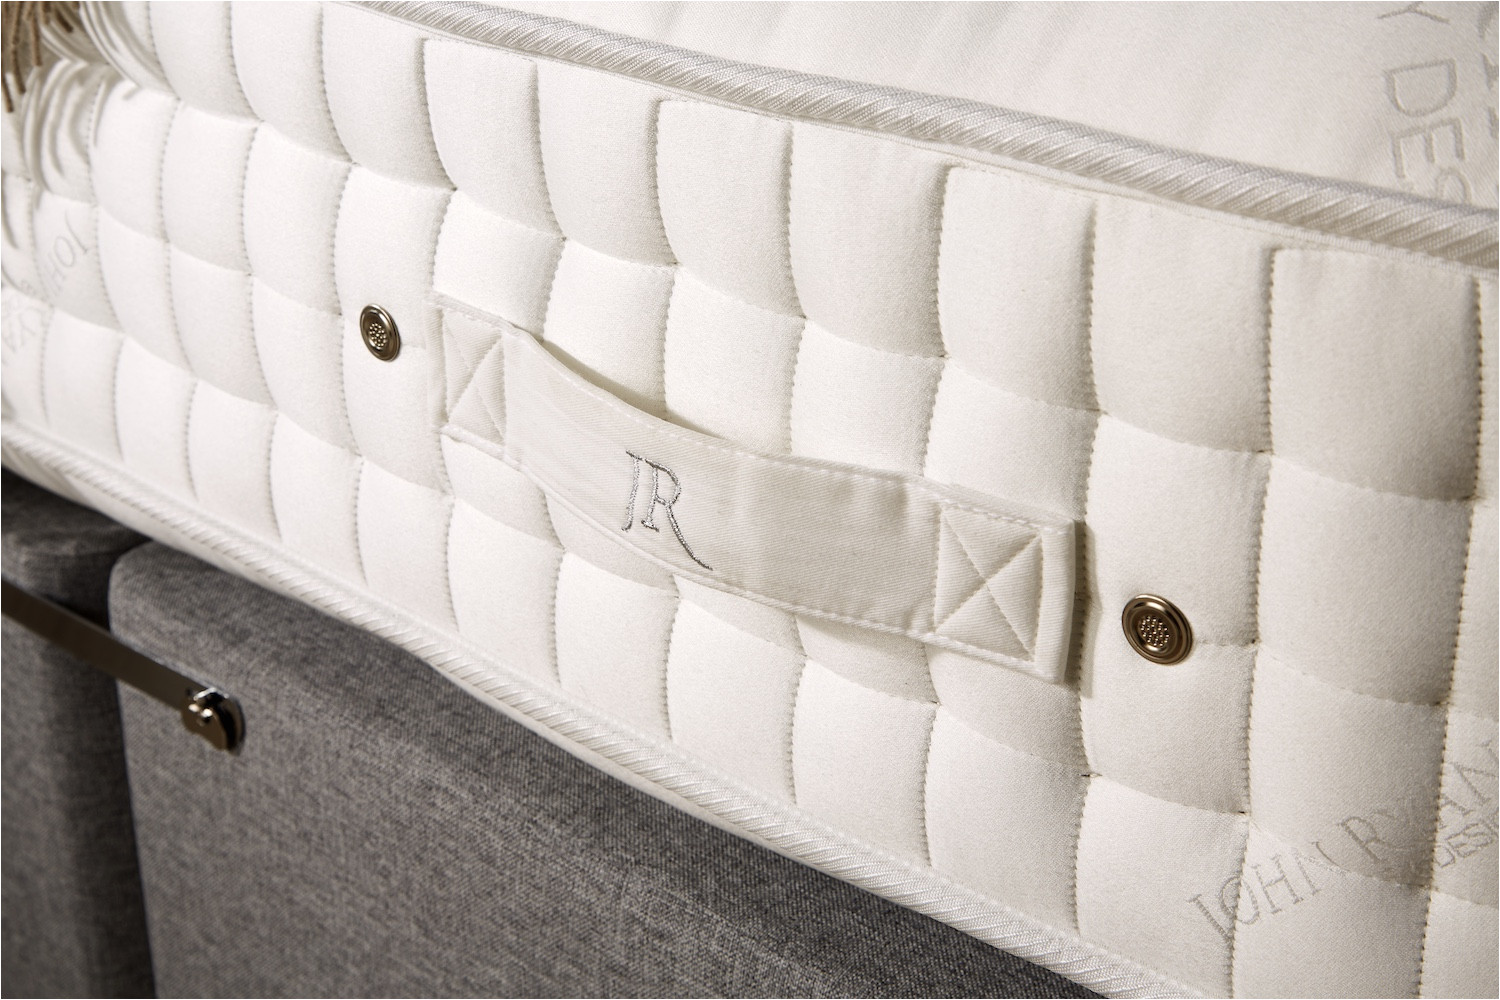 upholstery is the main area that gives a mattress either a soft medium or firm feel not the spring unit